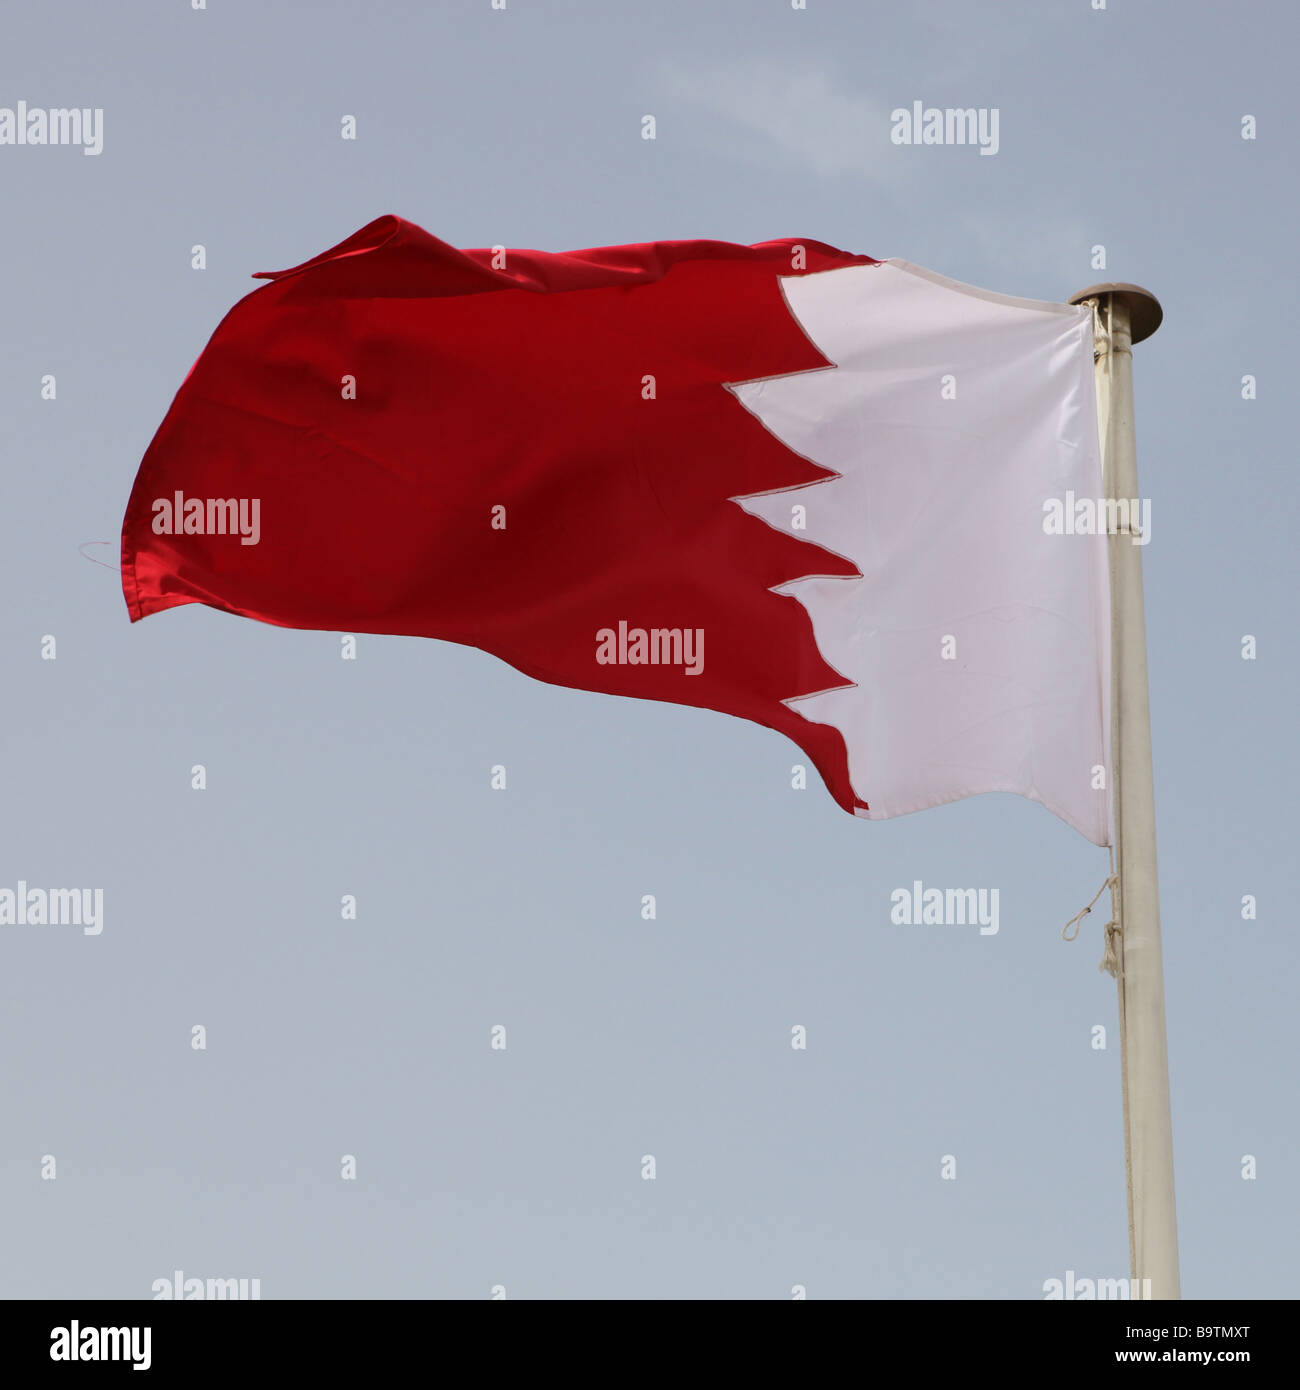 The national flag of Gulf Co operation Council member